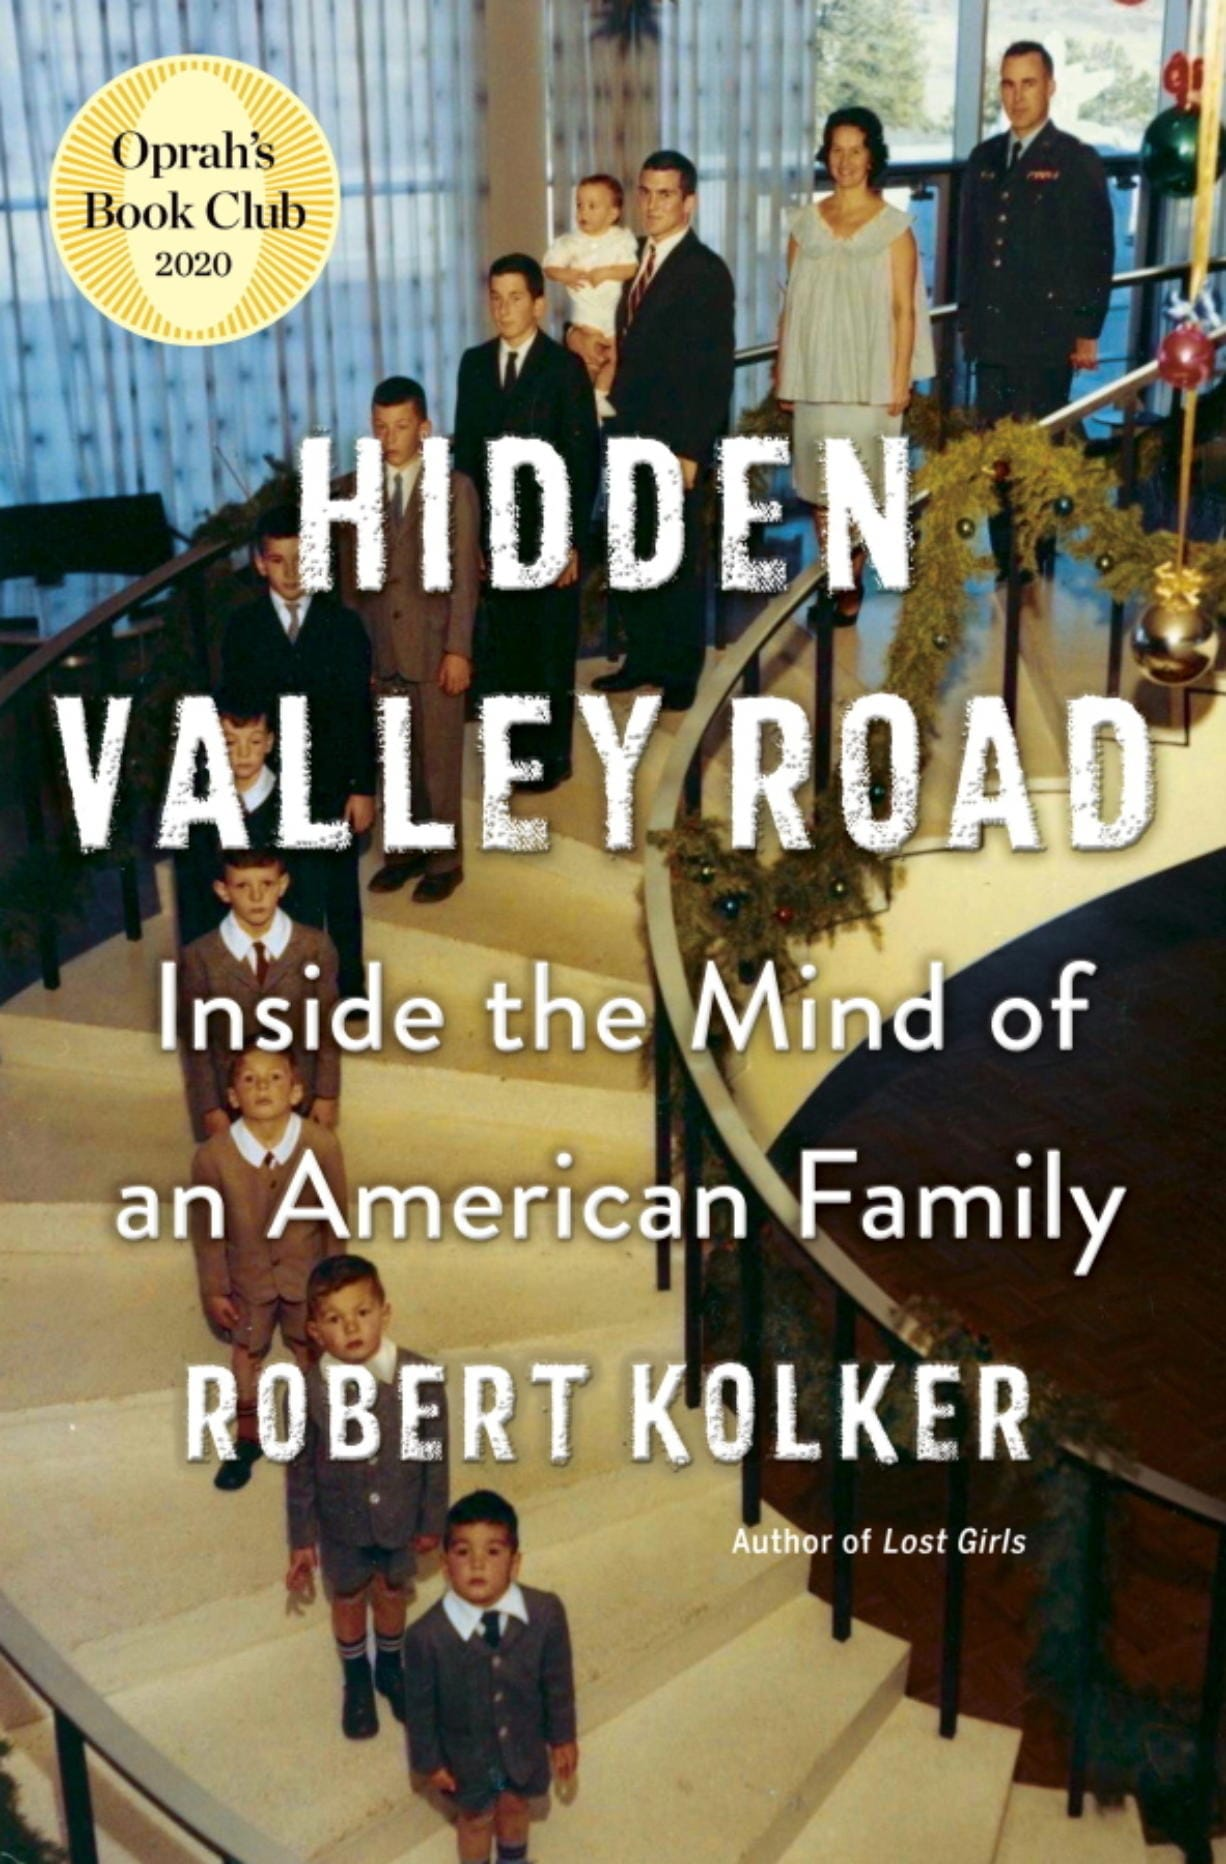 """This cover image released by Doubeday shows Robert Kolker's """"Hidden Valley Road."""" The book, an in-depth and highly praised account of a 1950s family in which six children were diagnosed with schizophrenia, was selected by Oprah Winfrey for her book club. Winfrey says that she will continue picking books during the coronavirus outbreak, and will seek new ways to engage readers."""